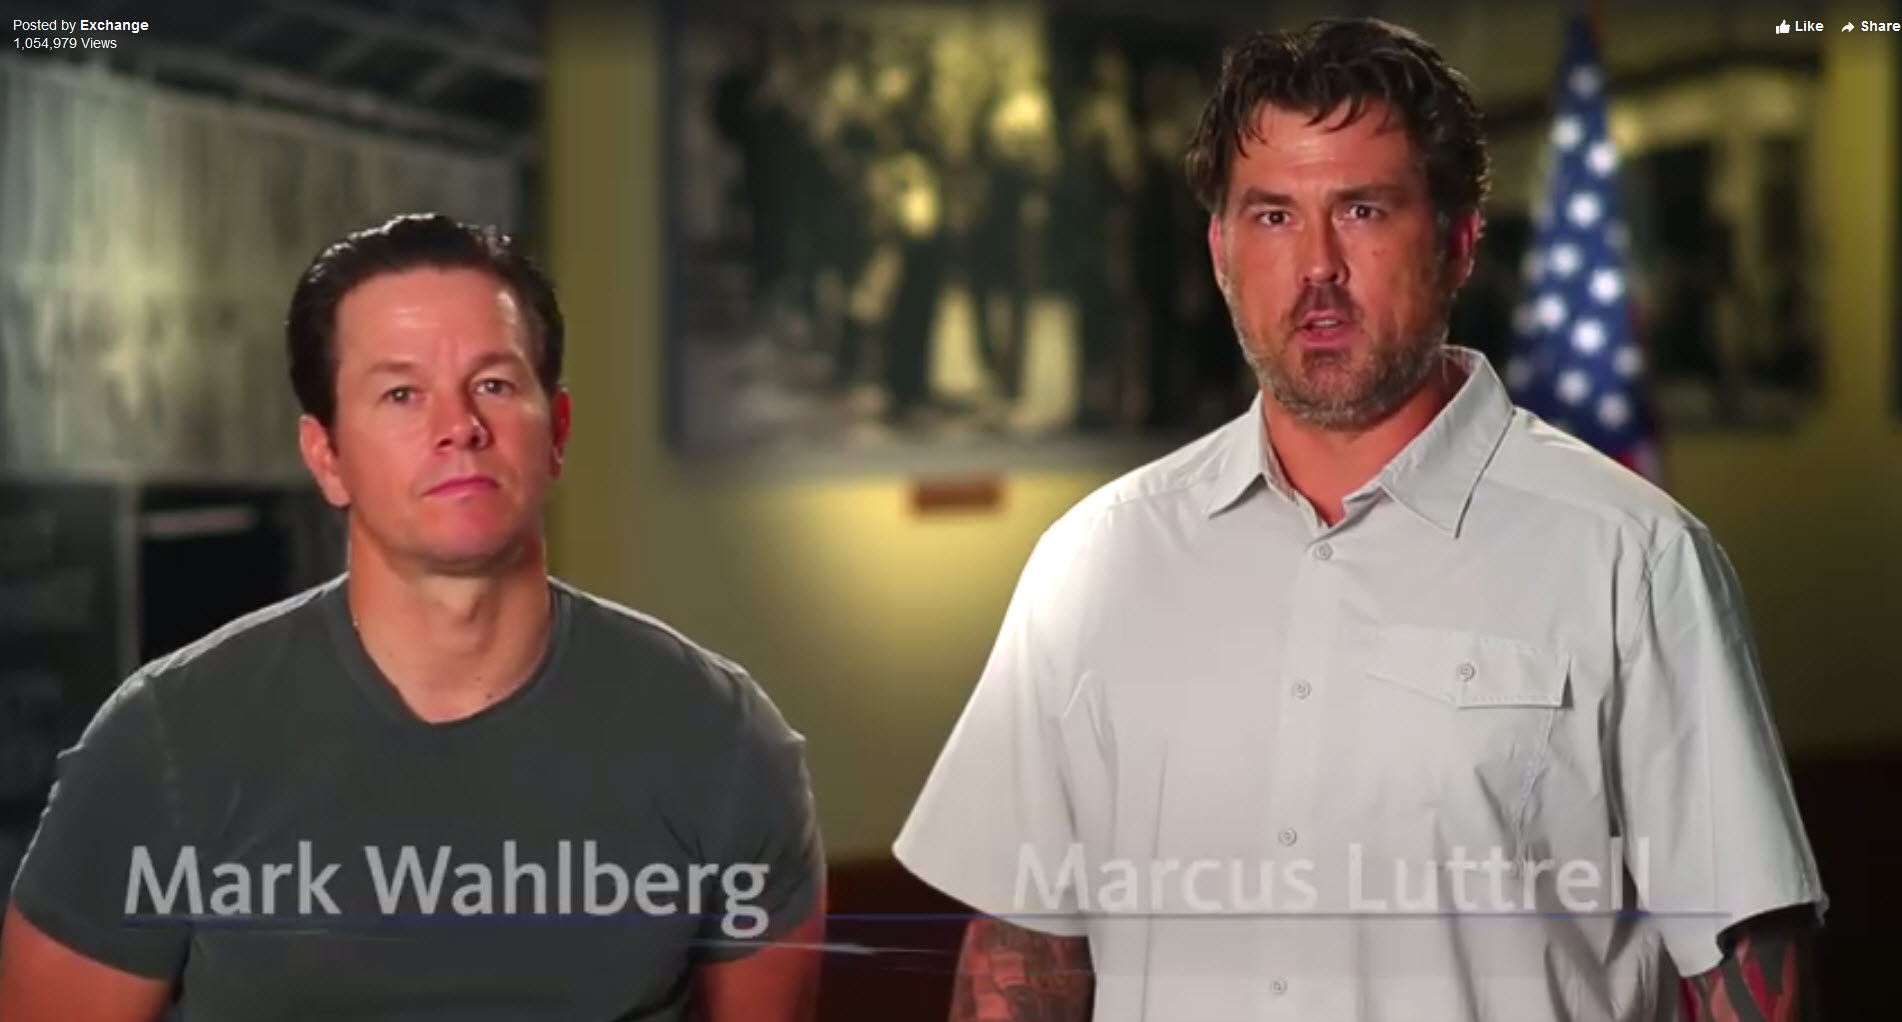 AAFES to Open Online Exchange Benefits in November: 'Lone Survivor' Duo Wants You to Enroll